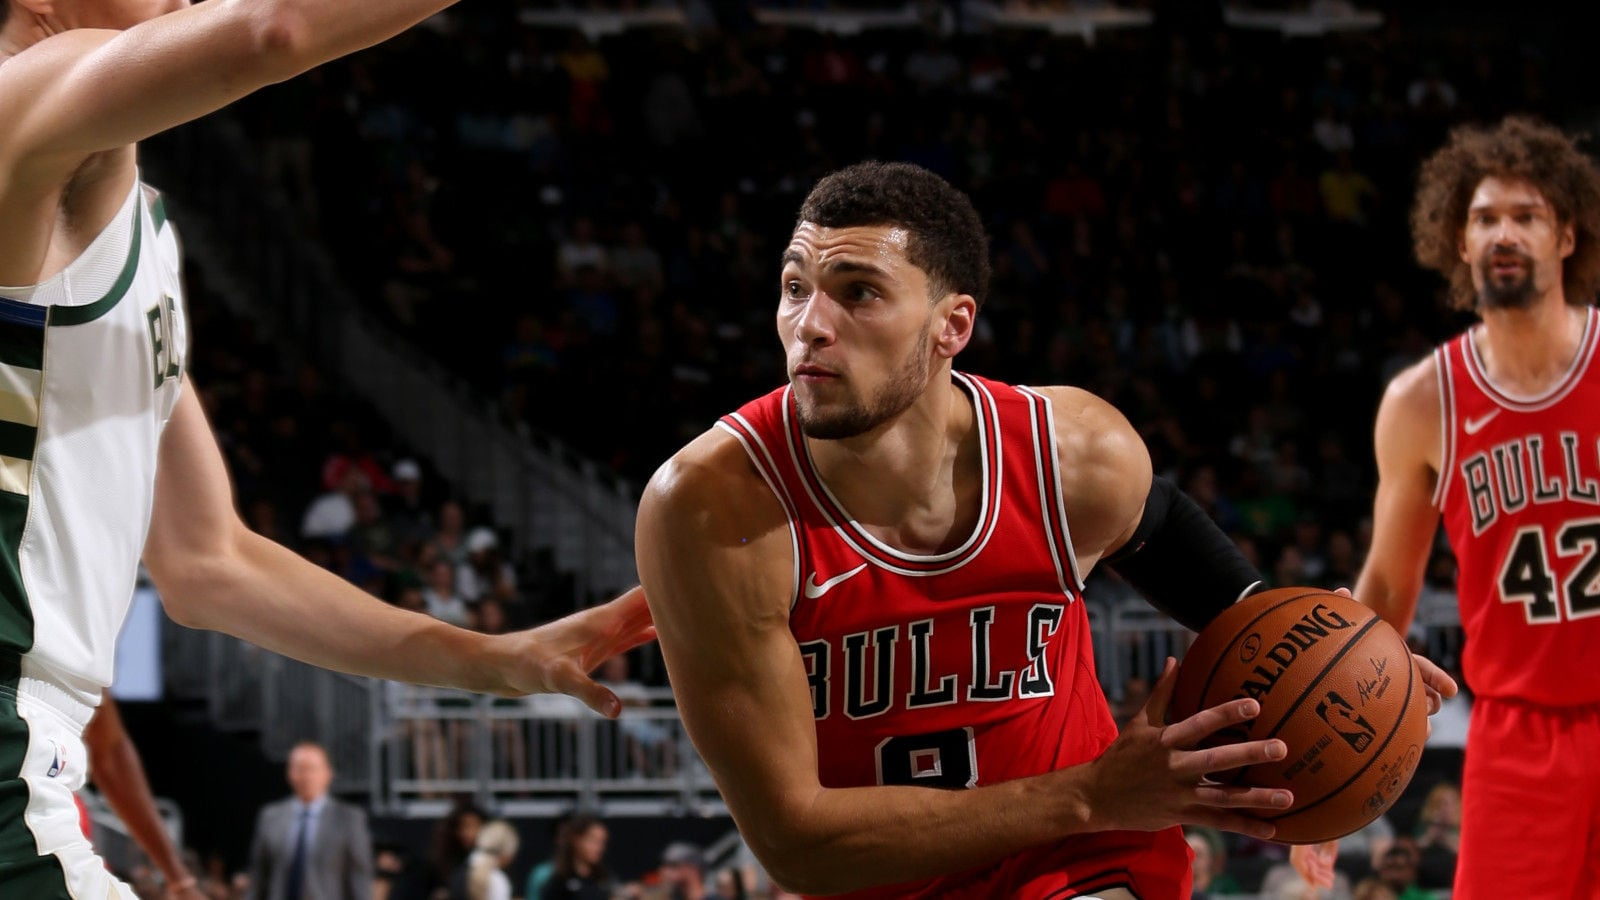 With Markkanen still out LaVine is ready to step up